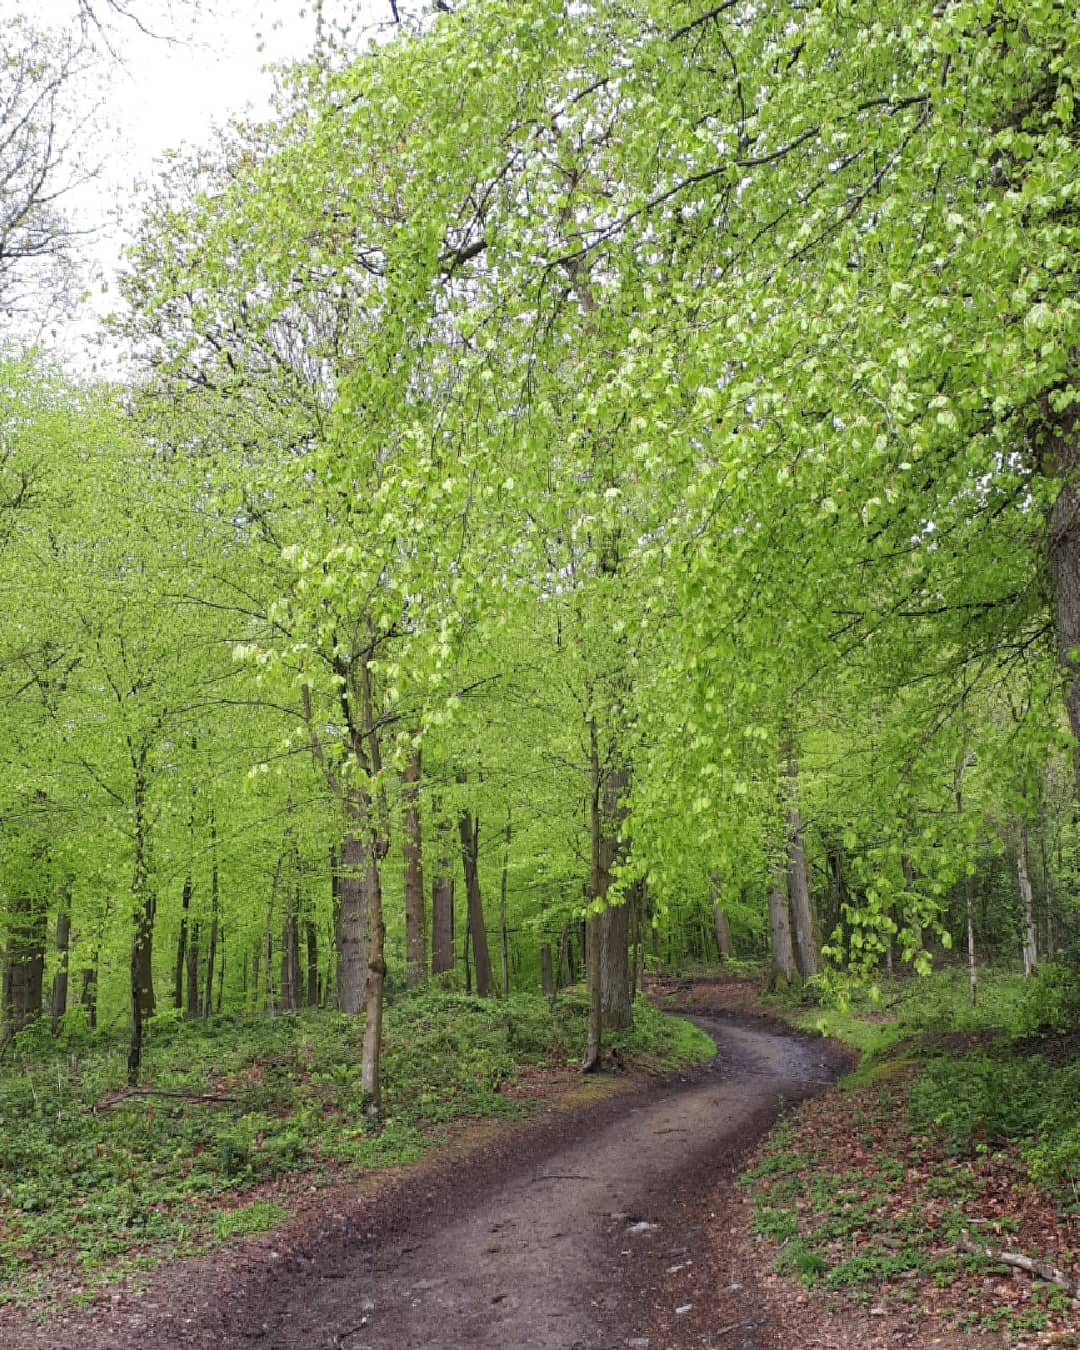 New Beech Leaves at Hergest Croft by Alice Draws the Line